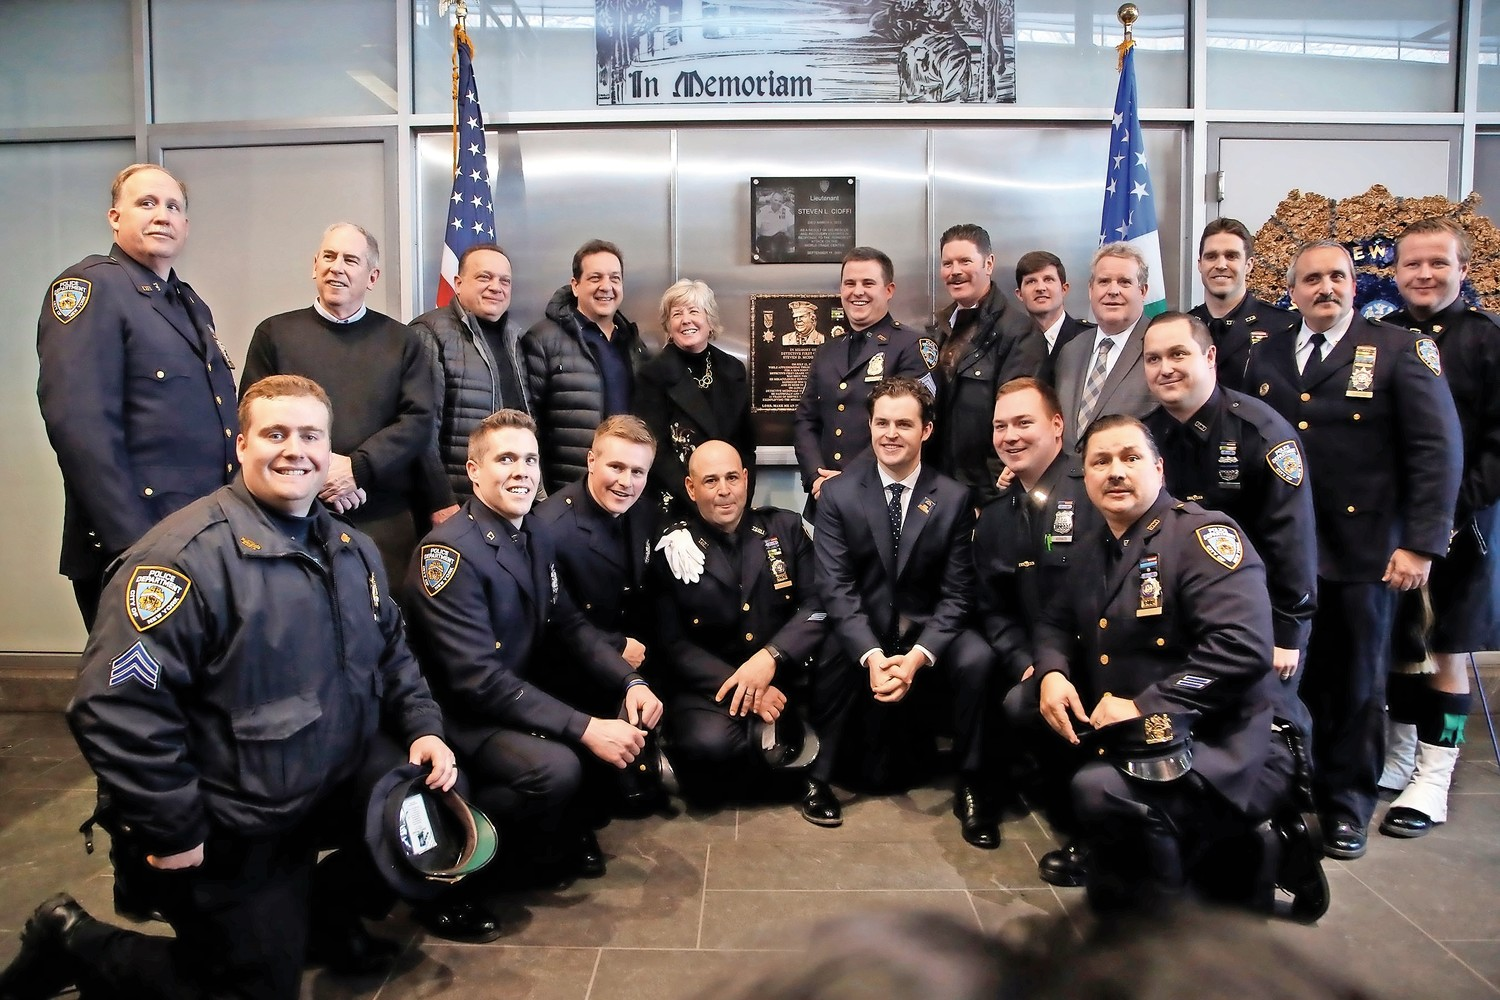 Malverne Mayor Patti Ann McDonald and NYPD Sergeant Conor McDonald, along with several NYPD officers, attended a plaque unveiling for NYPD Detective Steven McDonald.